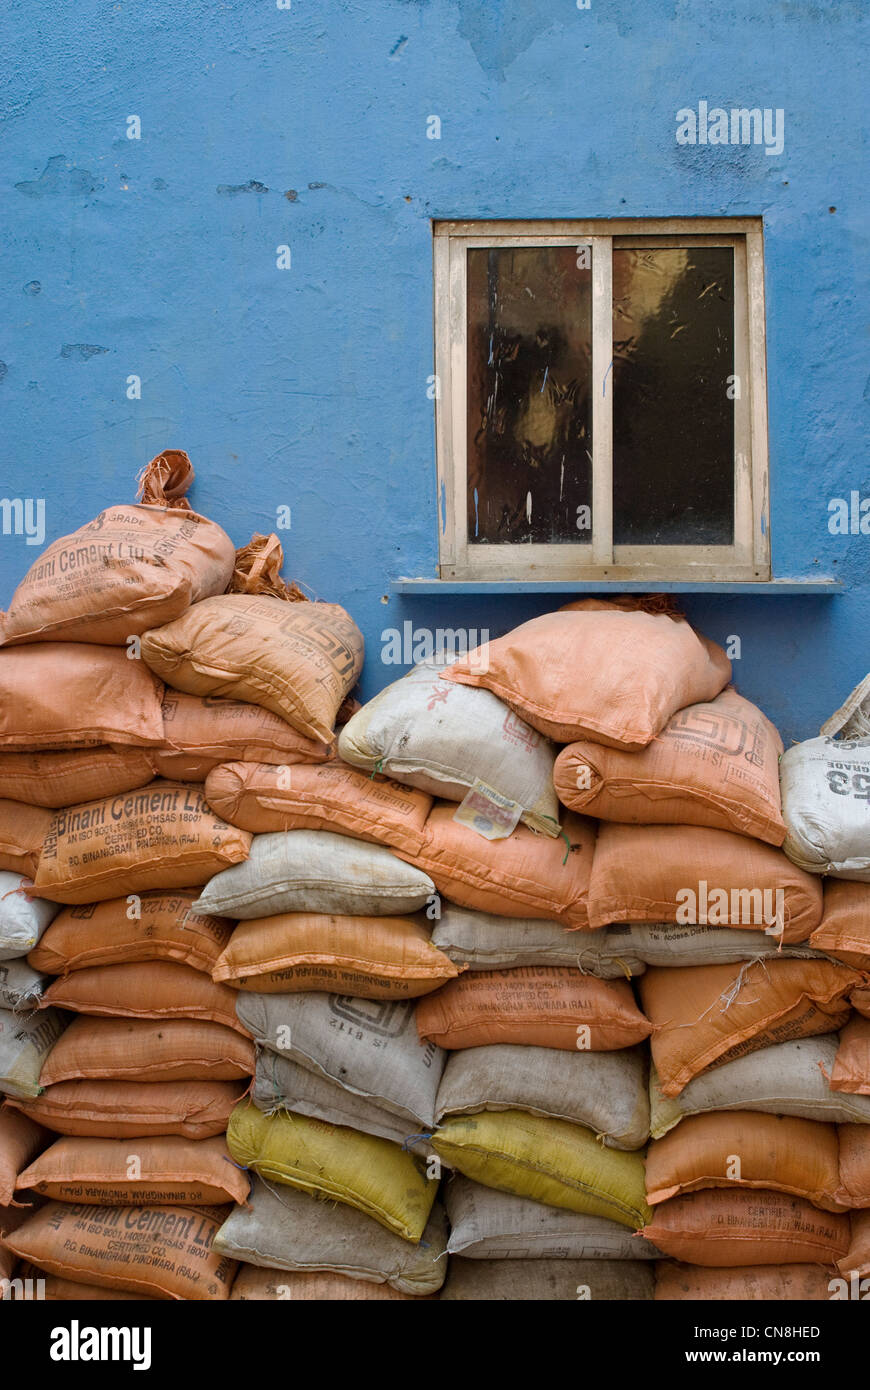 Sacks of sand placed in front of a blue wall with small window - Worli-Kohliwada - Stock Image